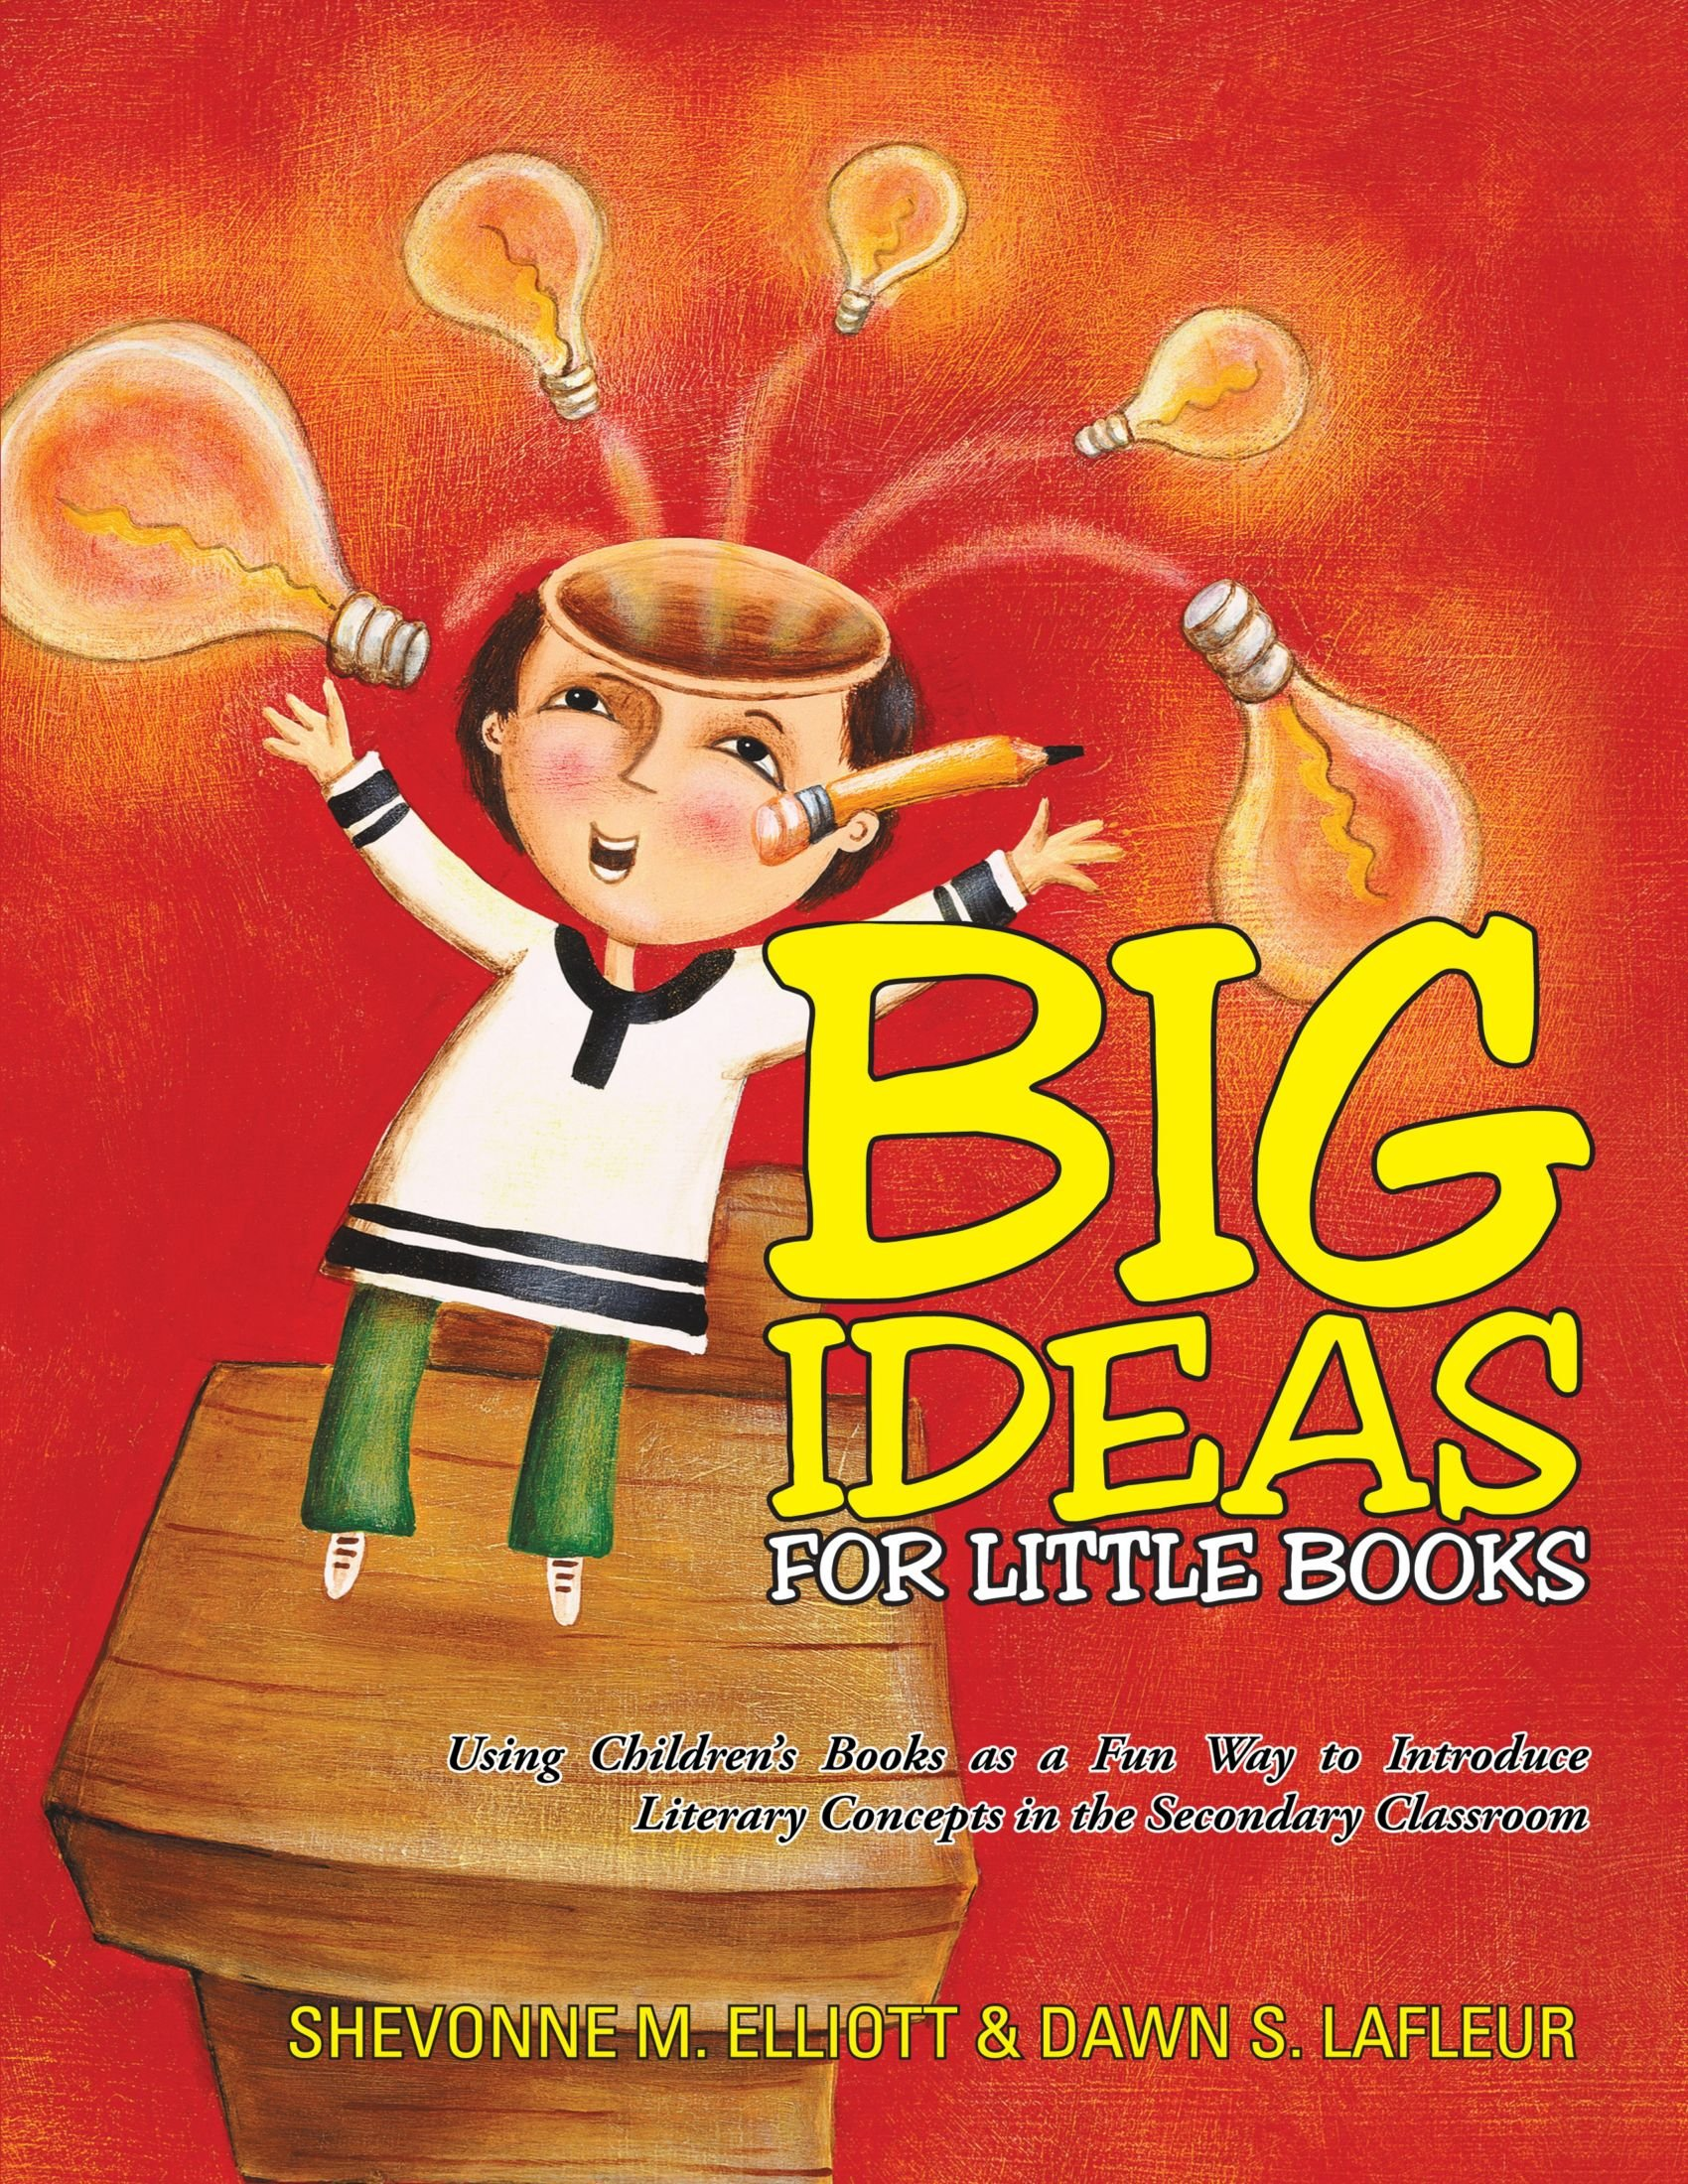 Download Big Ideas For Little Books: Using Children's Books as a Fun Way to Introduce Literary Concepts in the Secondary Classroom pdf